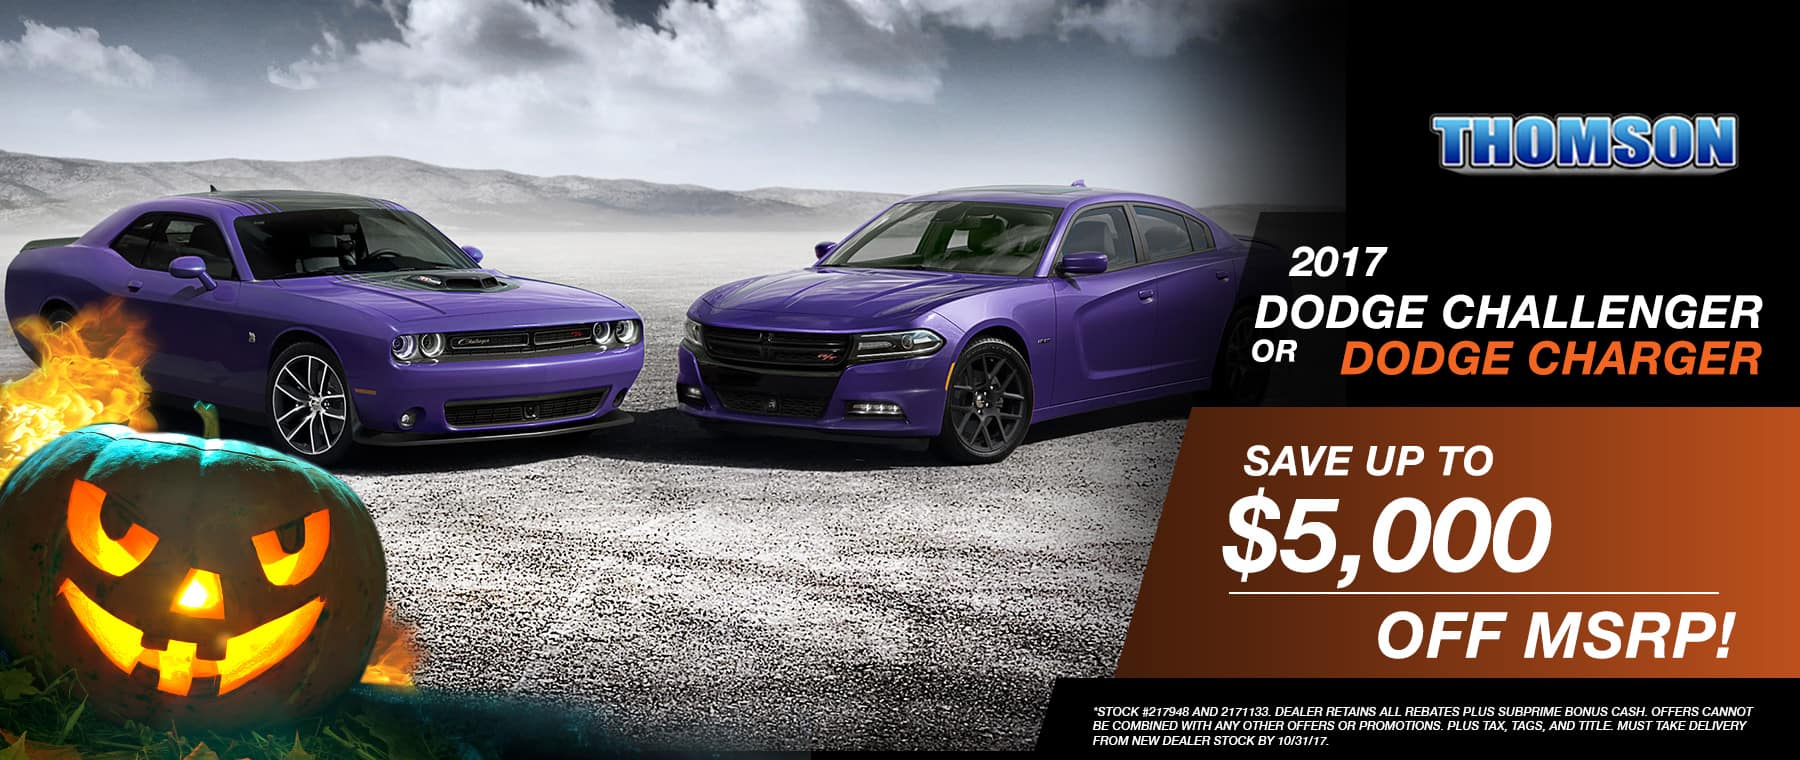 2017 Challenger or Dodge Charger Special at Thomson Dodge in Thomson, GA